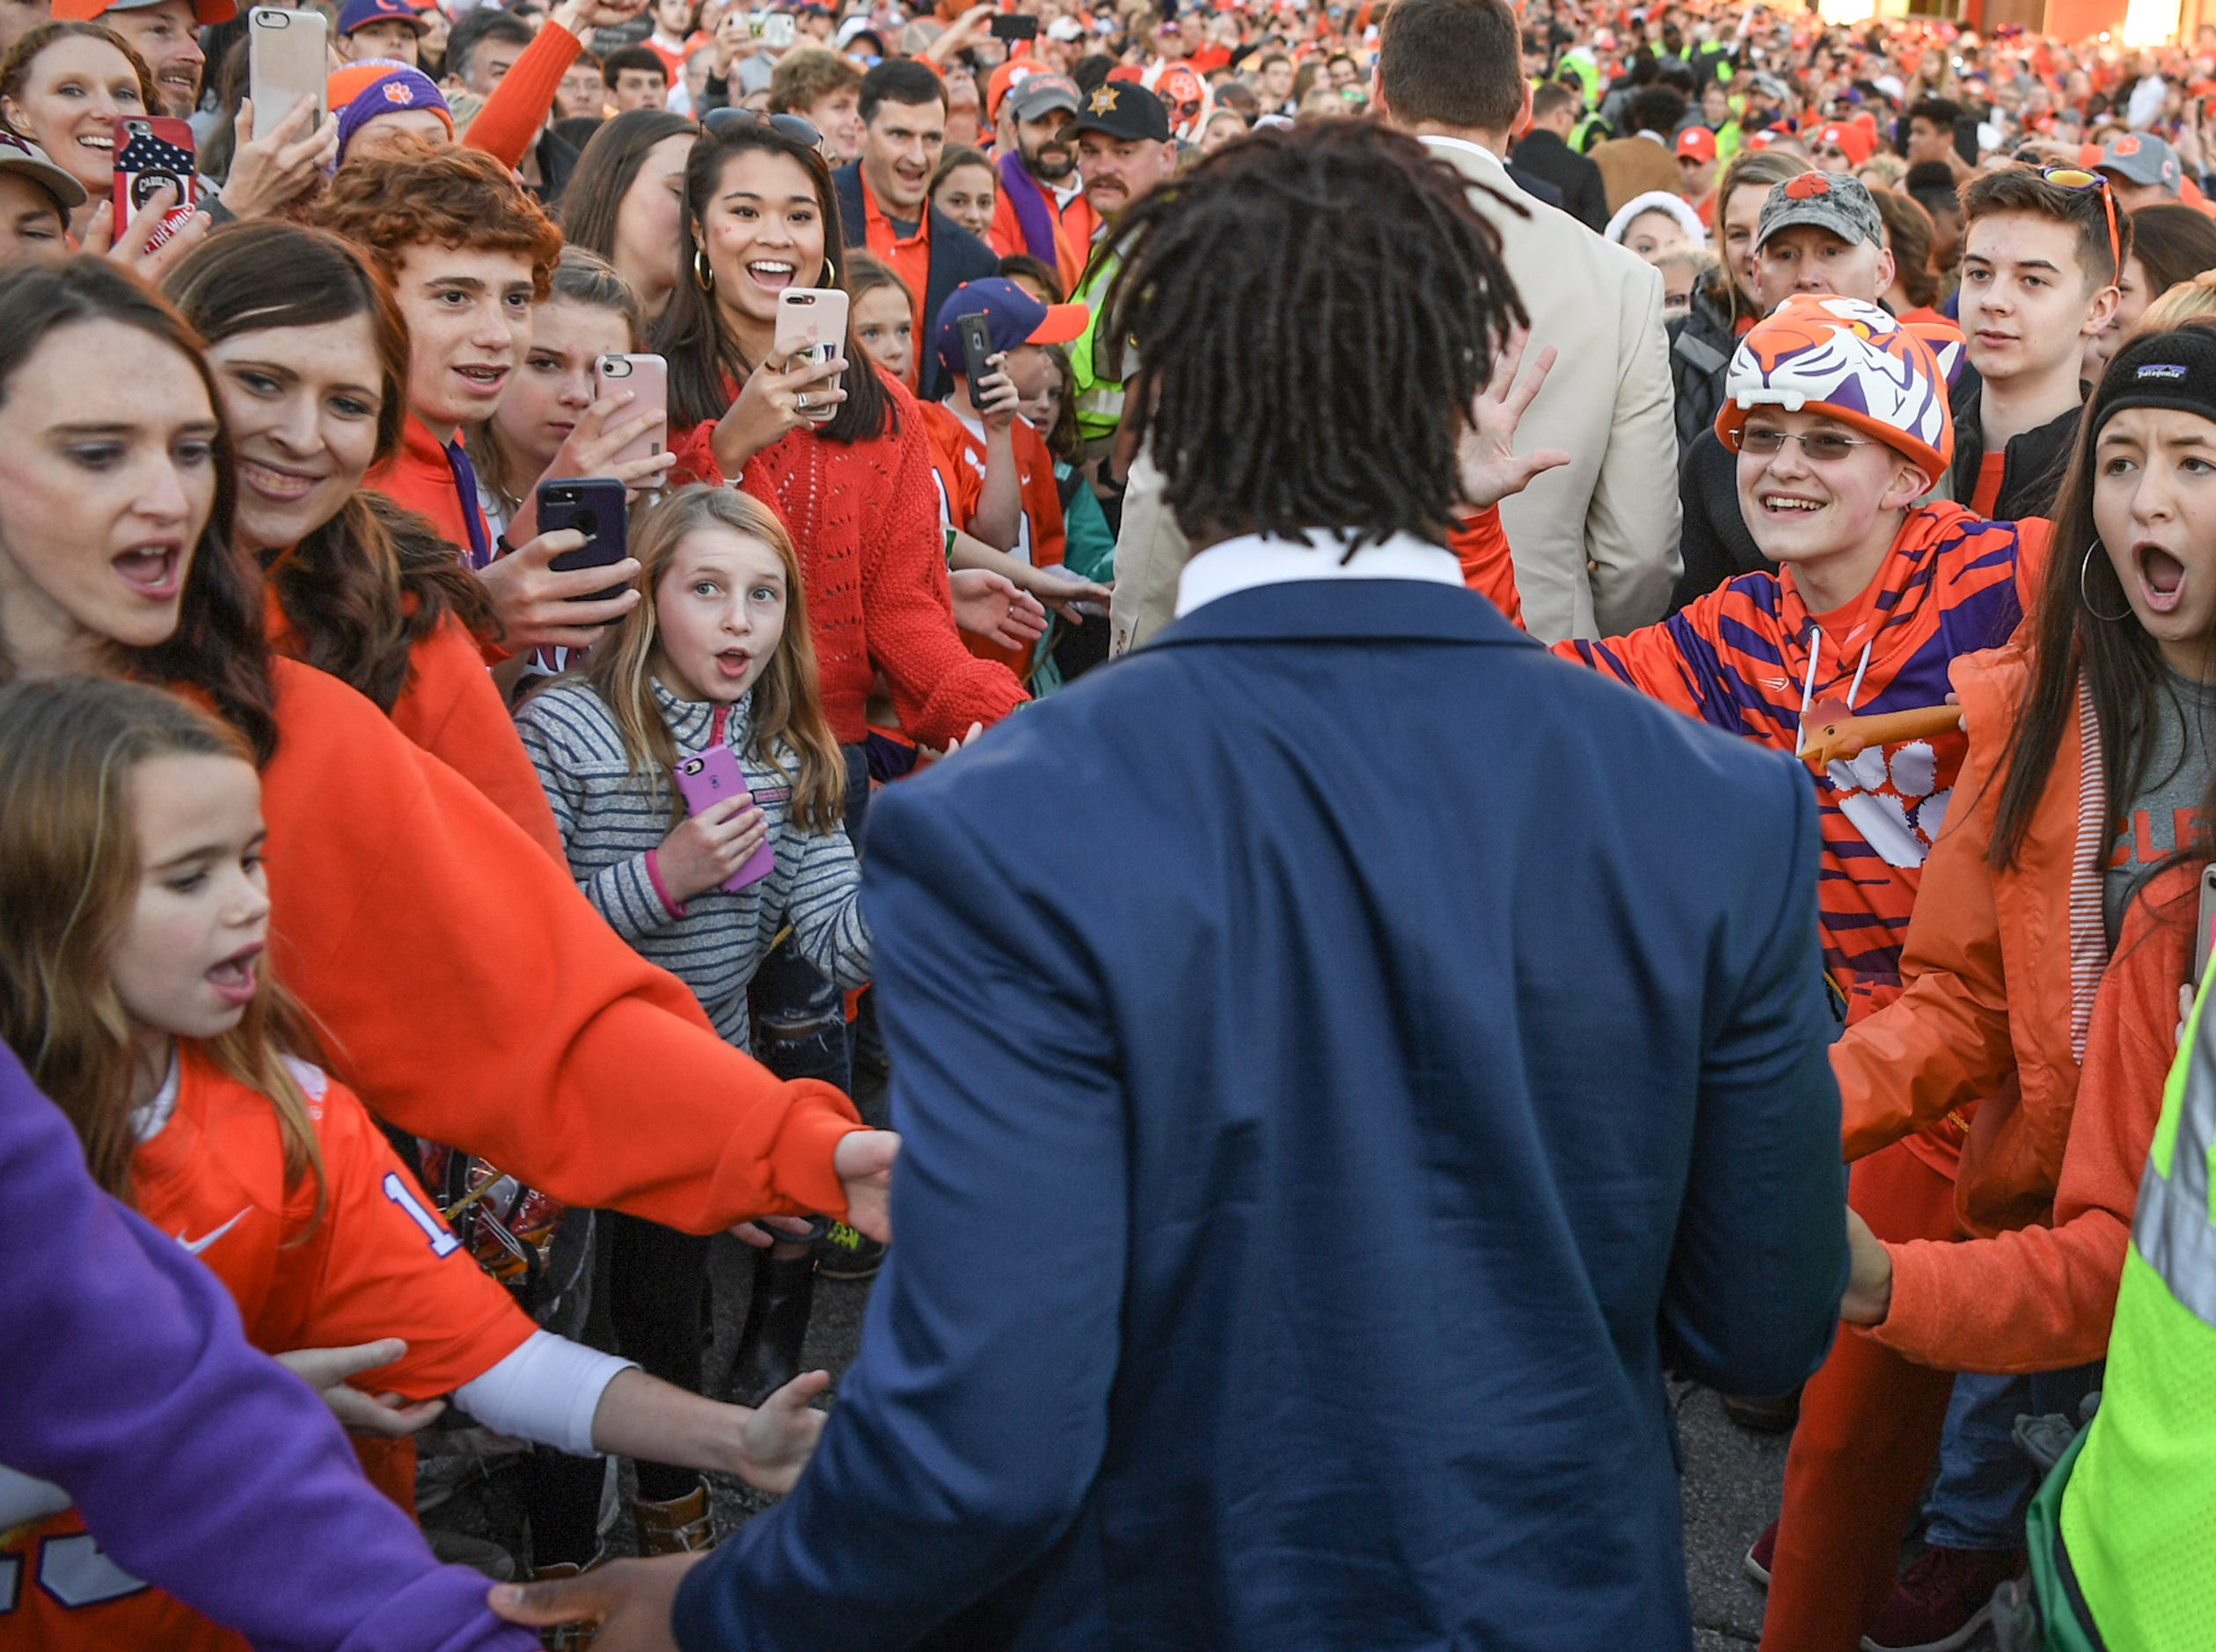 Clemson running back Travis Etienne walks by fans during Clemson Tiger Walk before kickoff outside Memorial Stadium, before the South Carolina at Clemson football game in Clemson on Saturday, November 24, 2018.